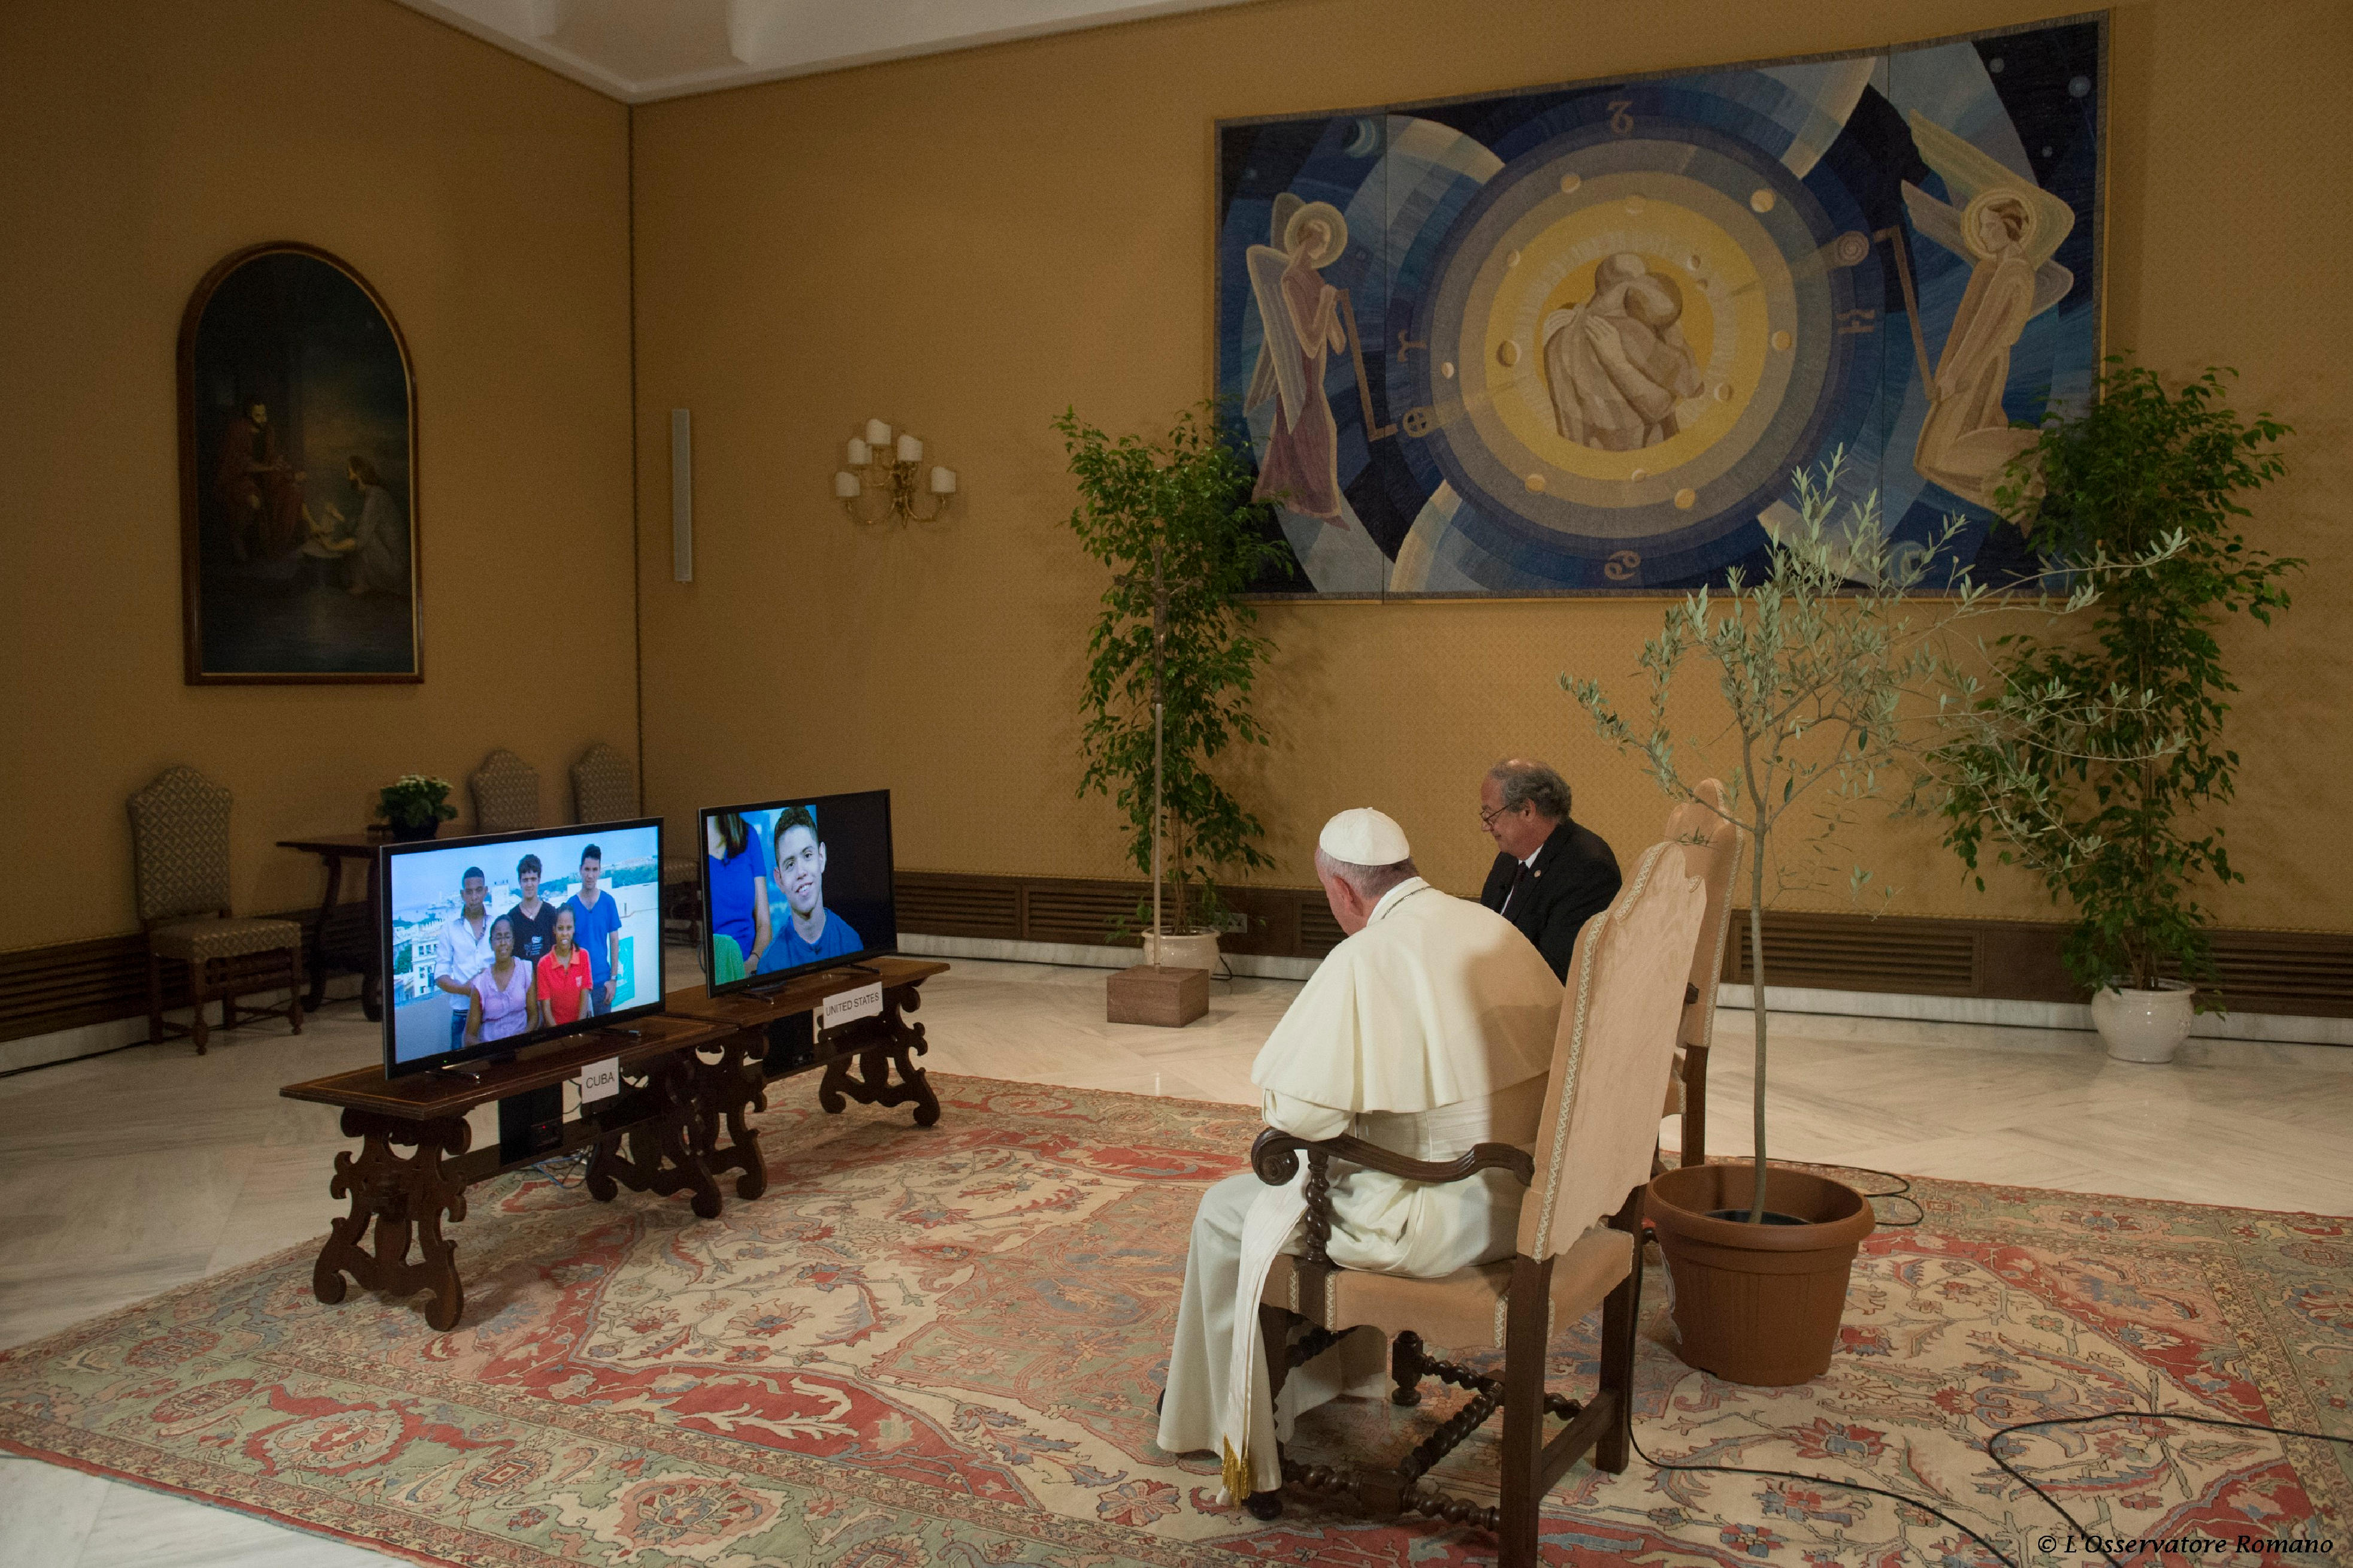 Pope Francis responds from the Vatican to questions from students in Cuba and USA during a CNN teleconference